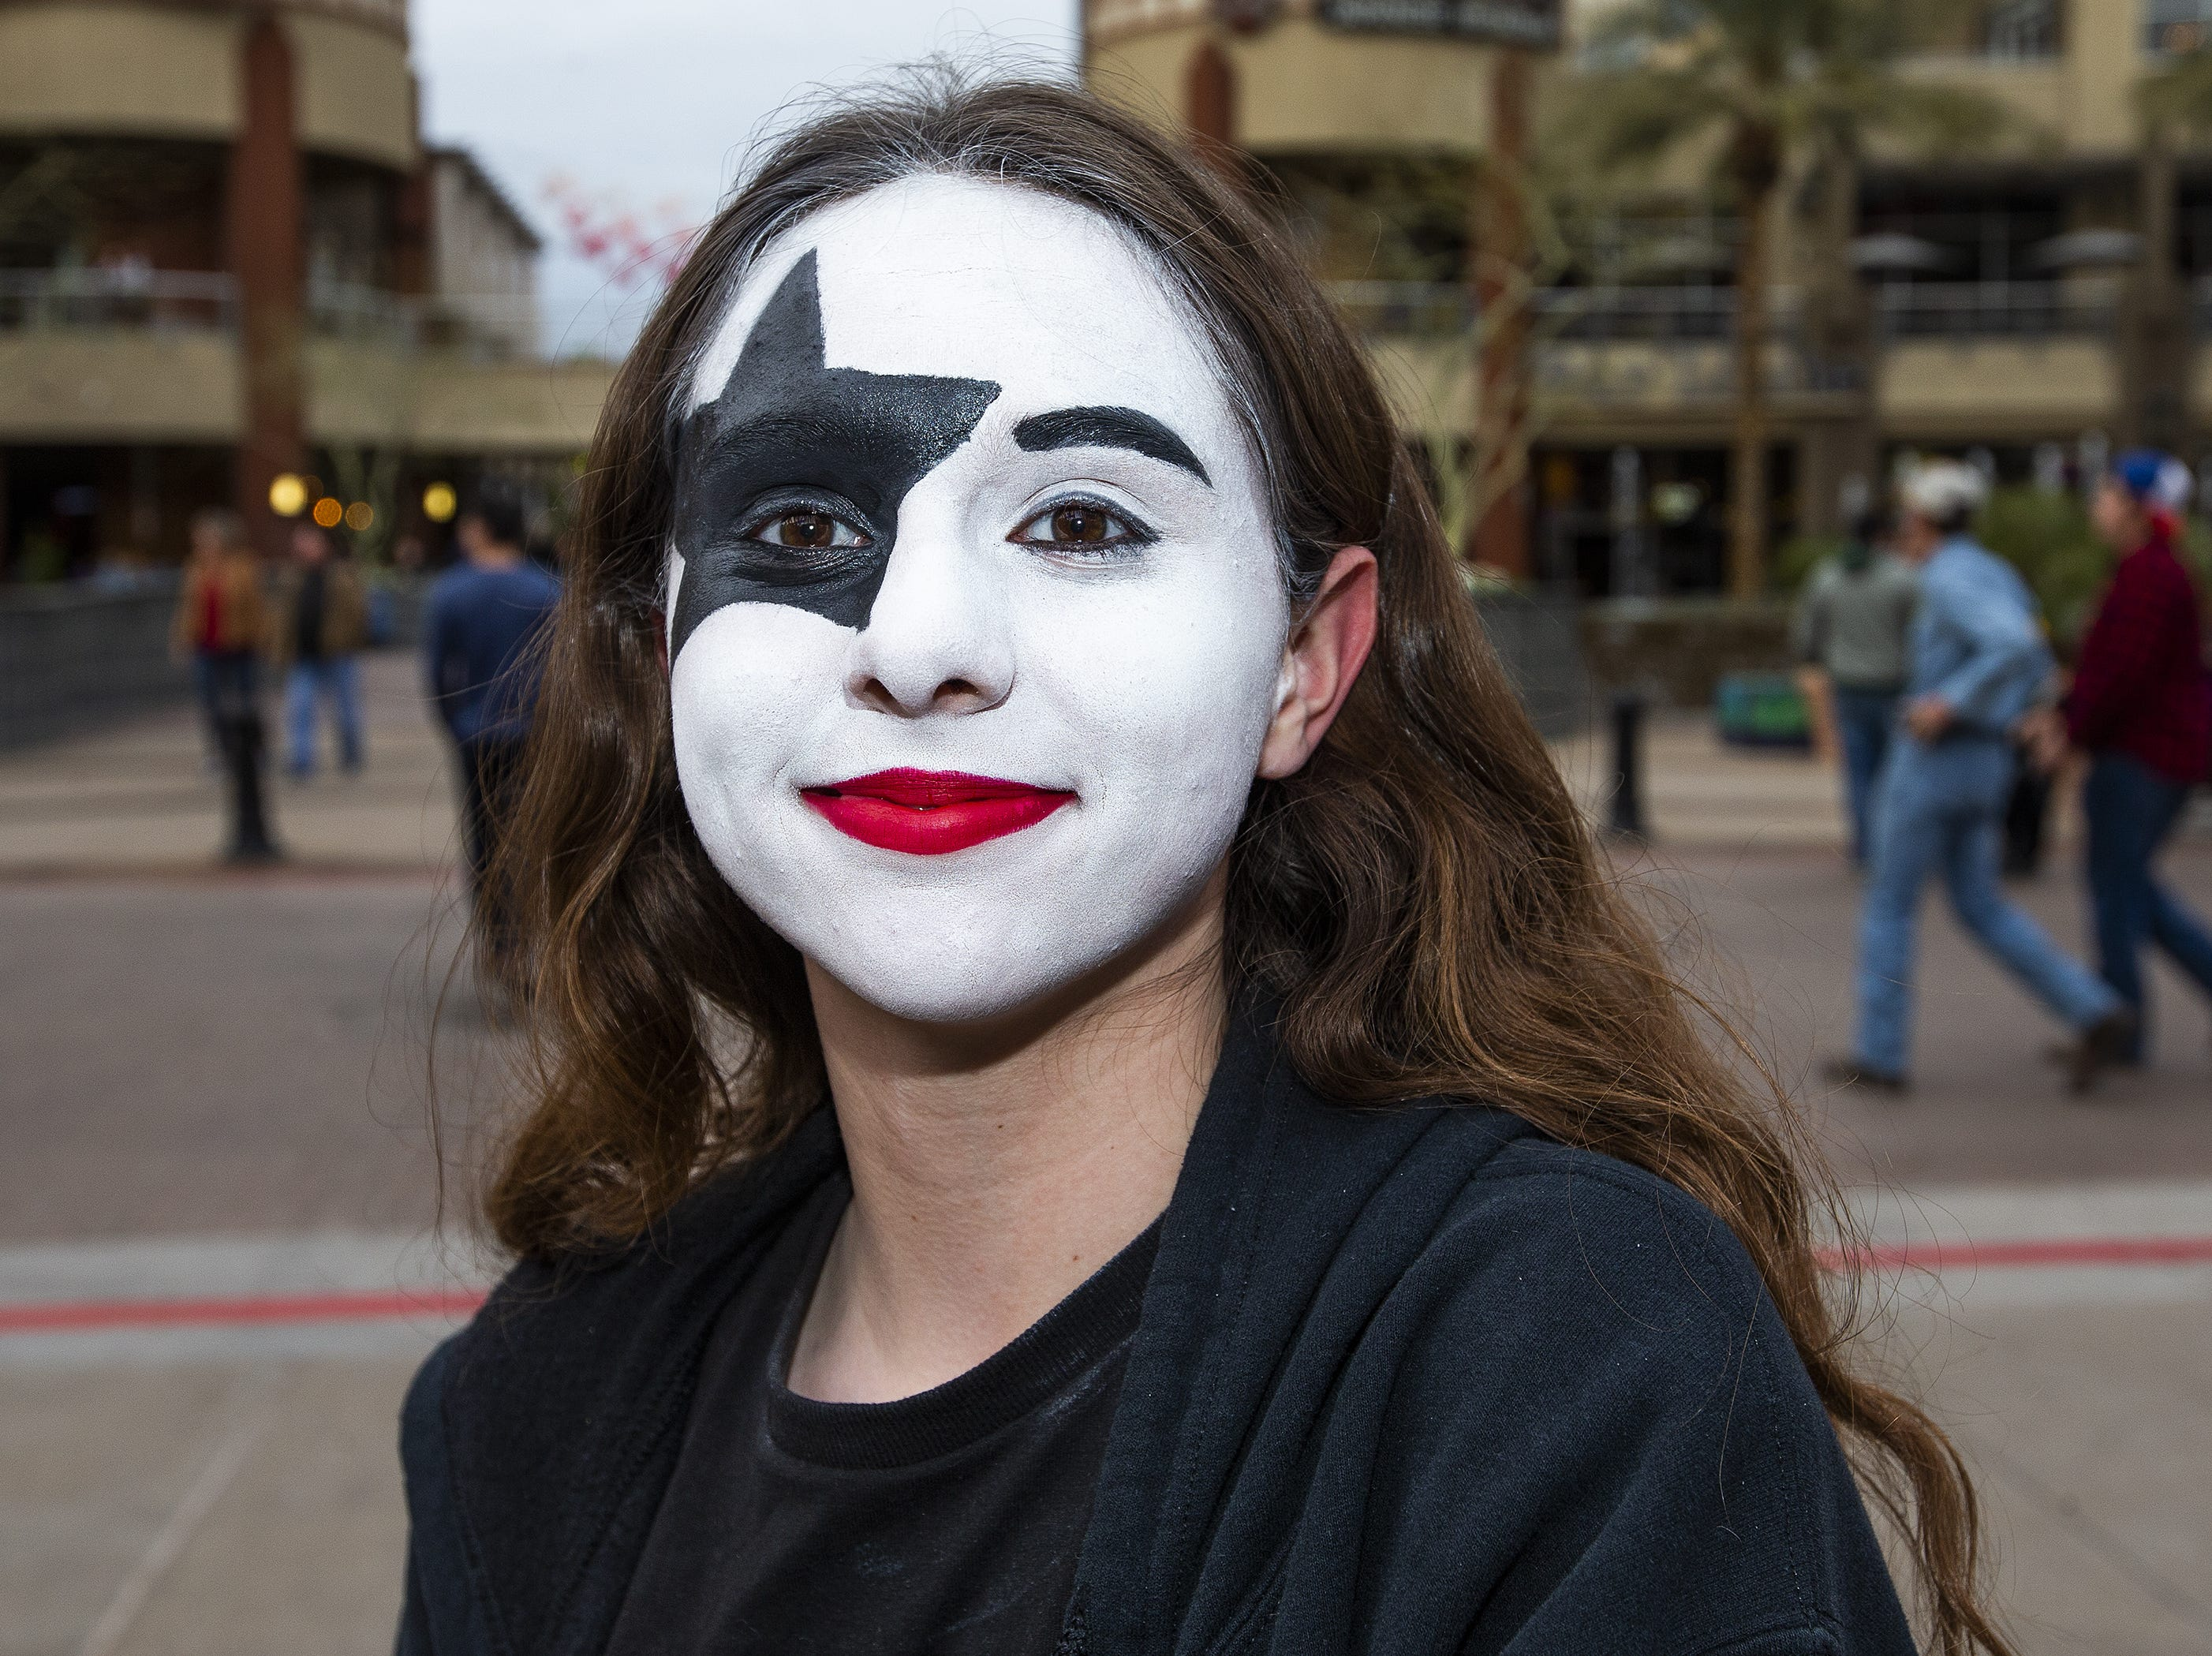 Jeneva Mitchell, 14, of Scottsdale, shows off her best KISS makeup prior to the concert by the famed group at Gila River Arena in Glendale on Wednesday, Feb. 13, 2019. The concert was part of the End of the Road World Tour, the band's farewell to the fans.